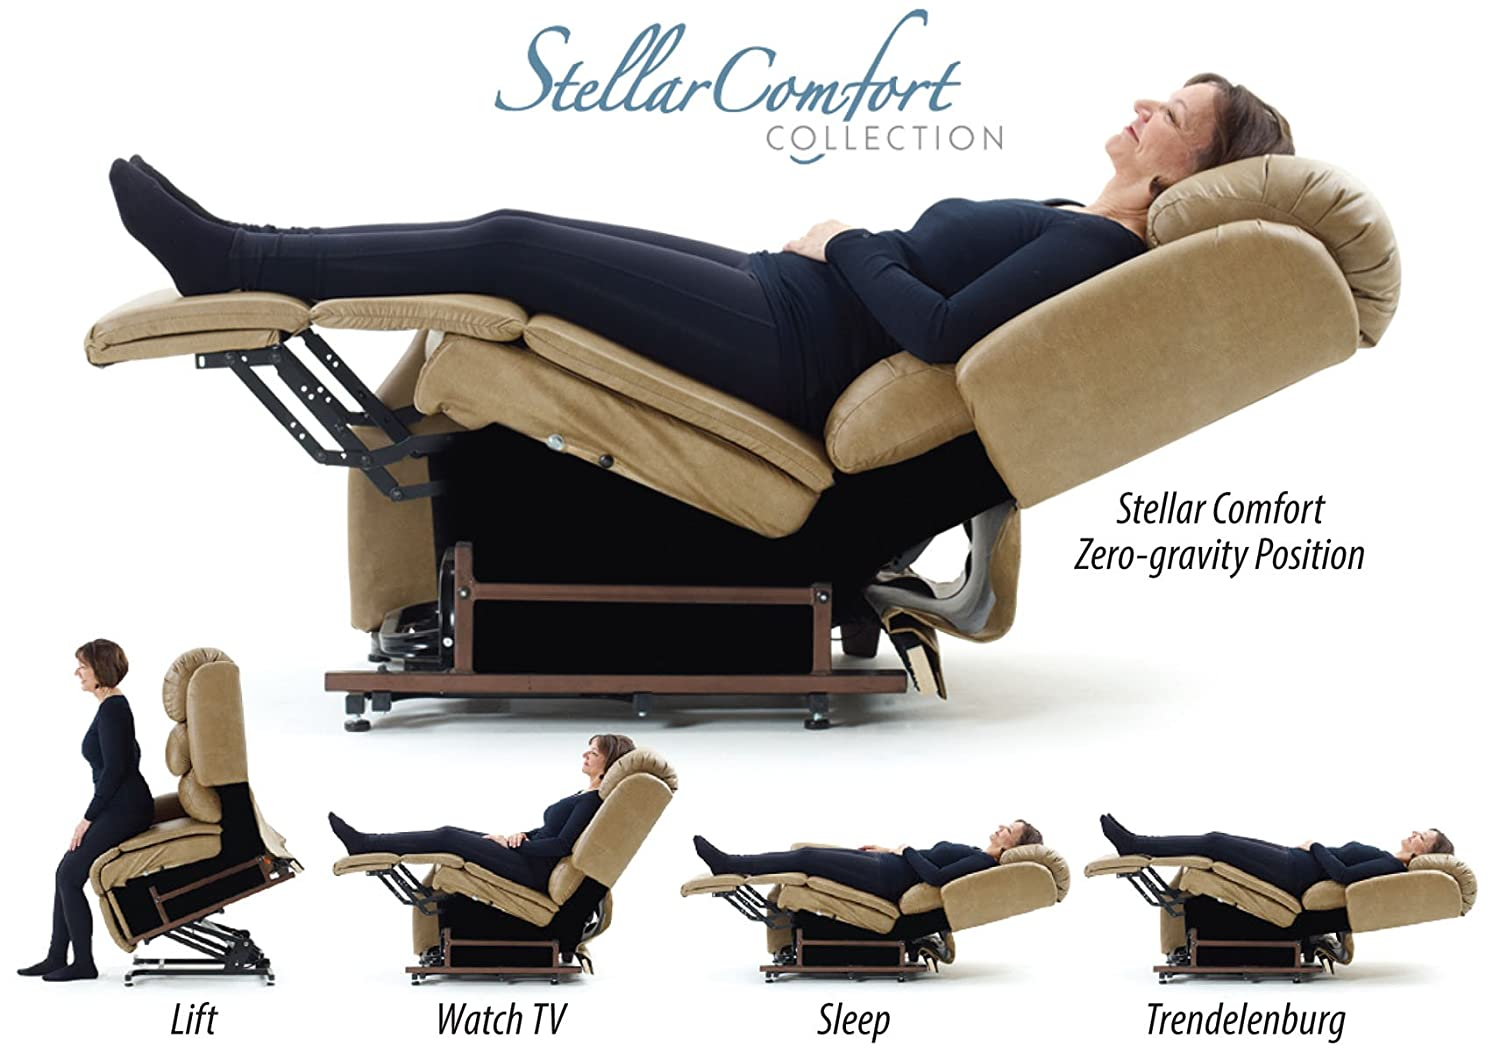 Amazon.com StellarComfort Collection UC680 Zero Gravity Lift Chair Recliner with Power Pillow - Coffee Bean (curbside delivery) Health u0026 Personal Care  sc 1 st  Amazon.com & Amazon.com: StellarComfort Collection UC680 Zero Gravity Lift ... islam-shia.org